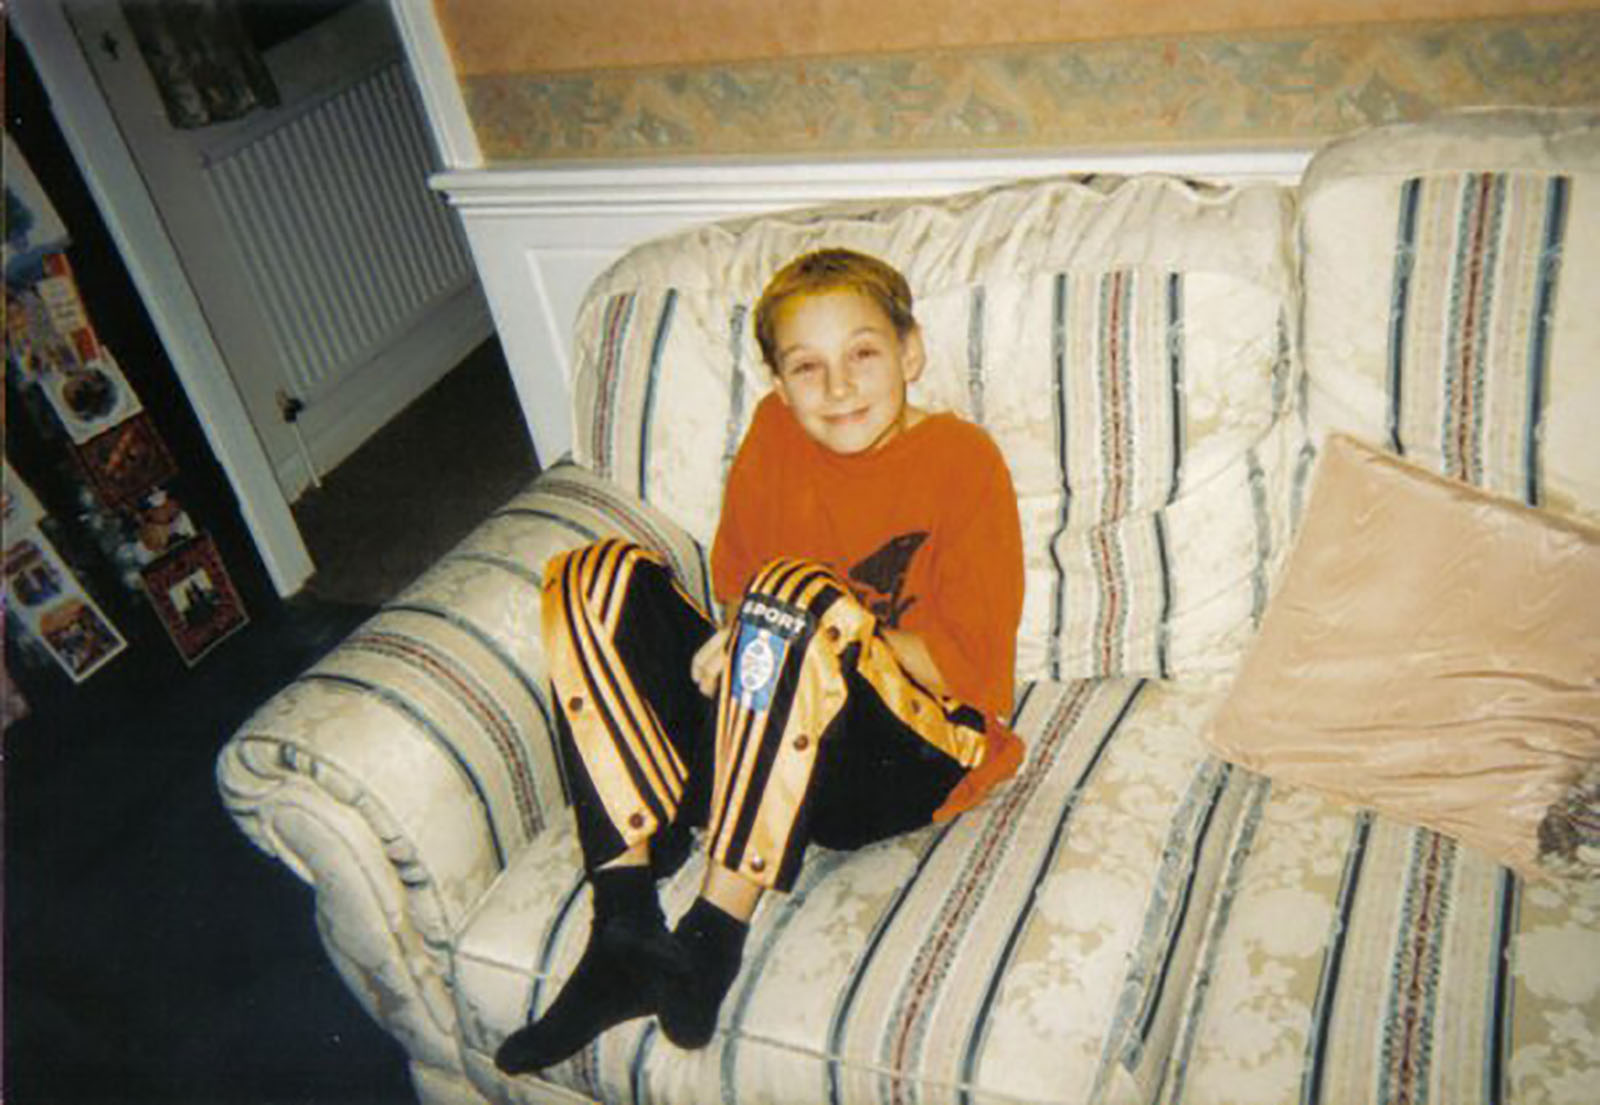 Darren as a young man (circa 10 years old) sat on a white sofa with stripes, wearing an orange t-shirt and black and orange tracksuit bottoms.